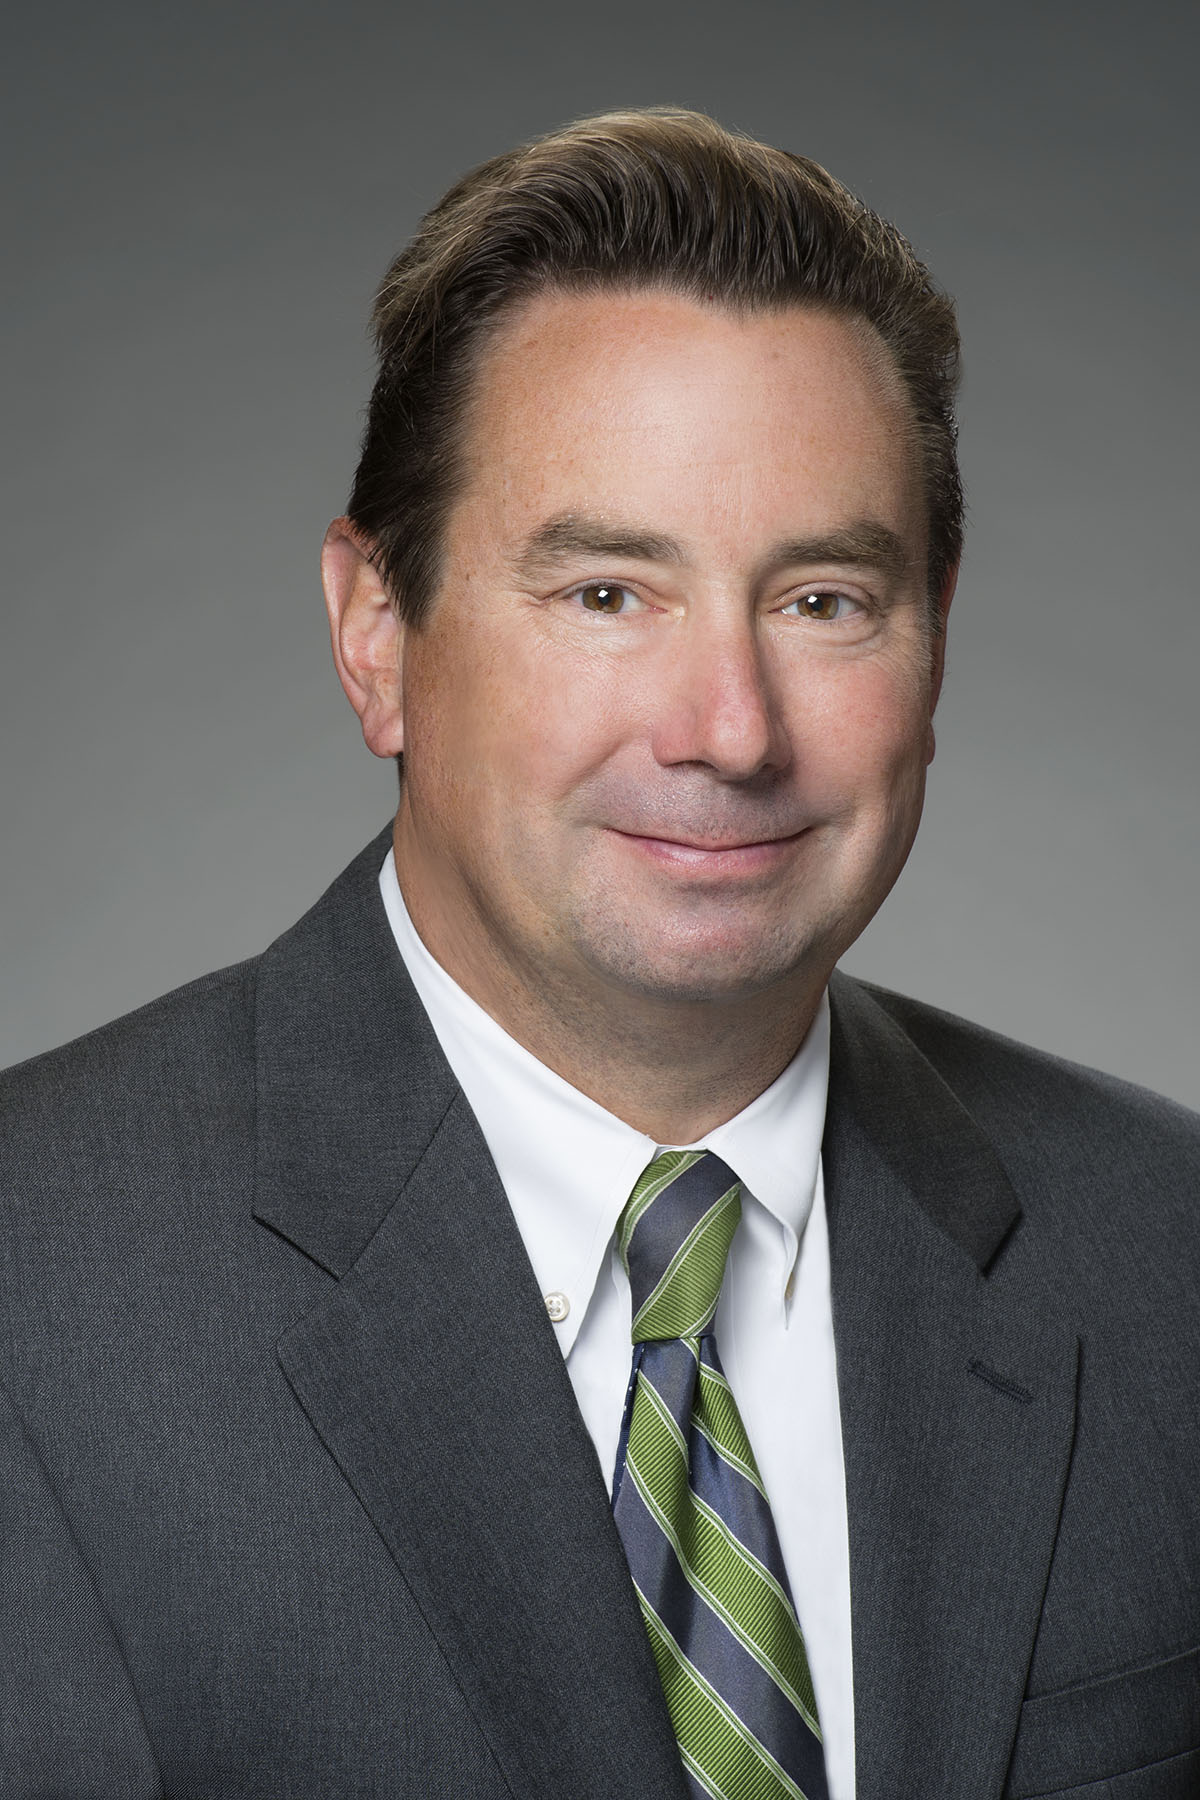 WSFS NAMES DAVID L GORNY AS SVP COMMERCIAL RELATIONSHIP MANAGER